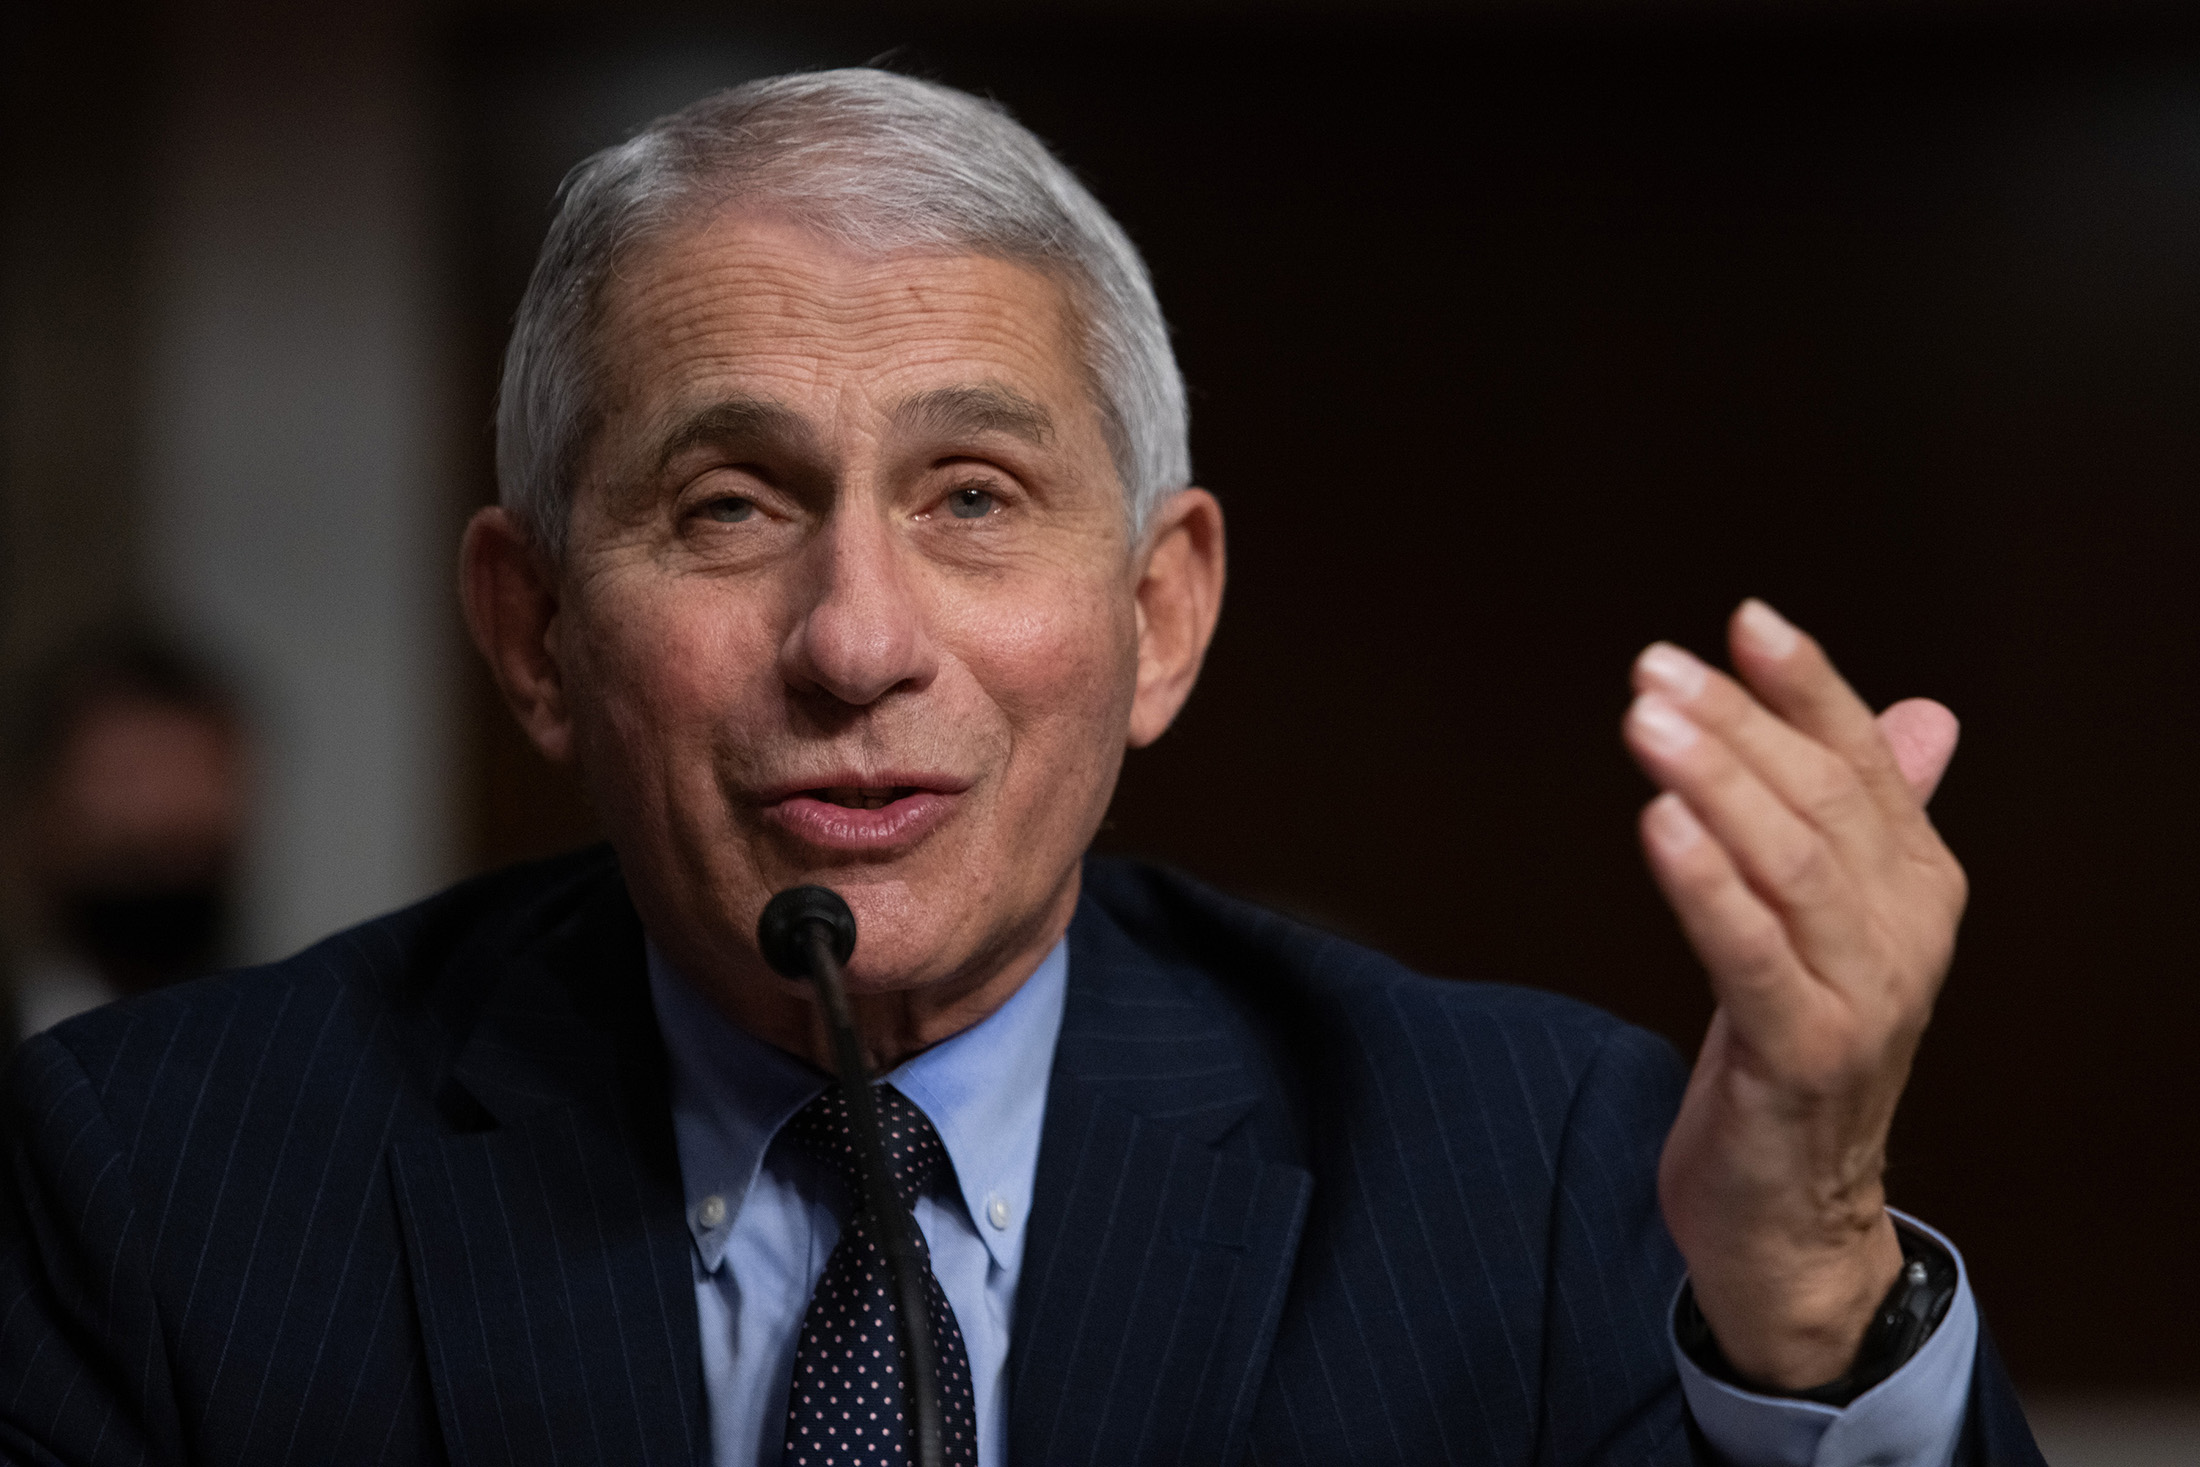 Anthony Fauci, director of the National Institute of Allergy and Infectious Diseases, speaks during a  committee hearing in Washington, D.C, on Wednesday, September 23.